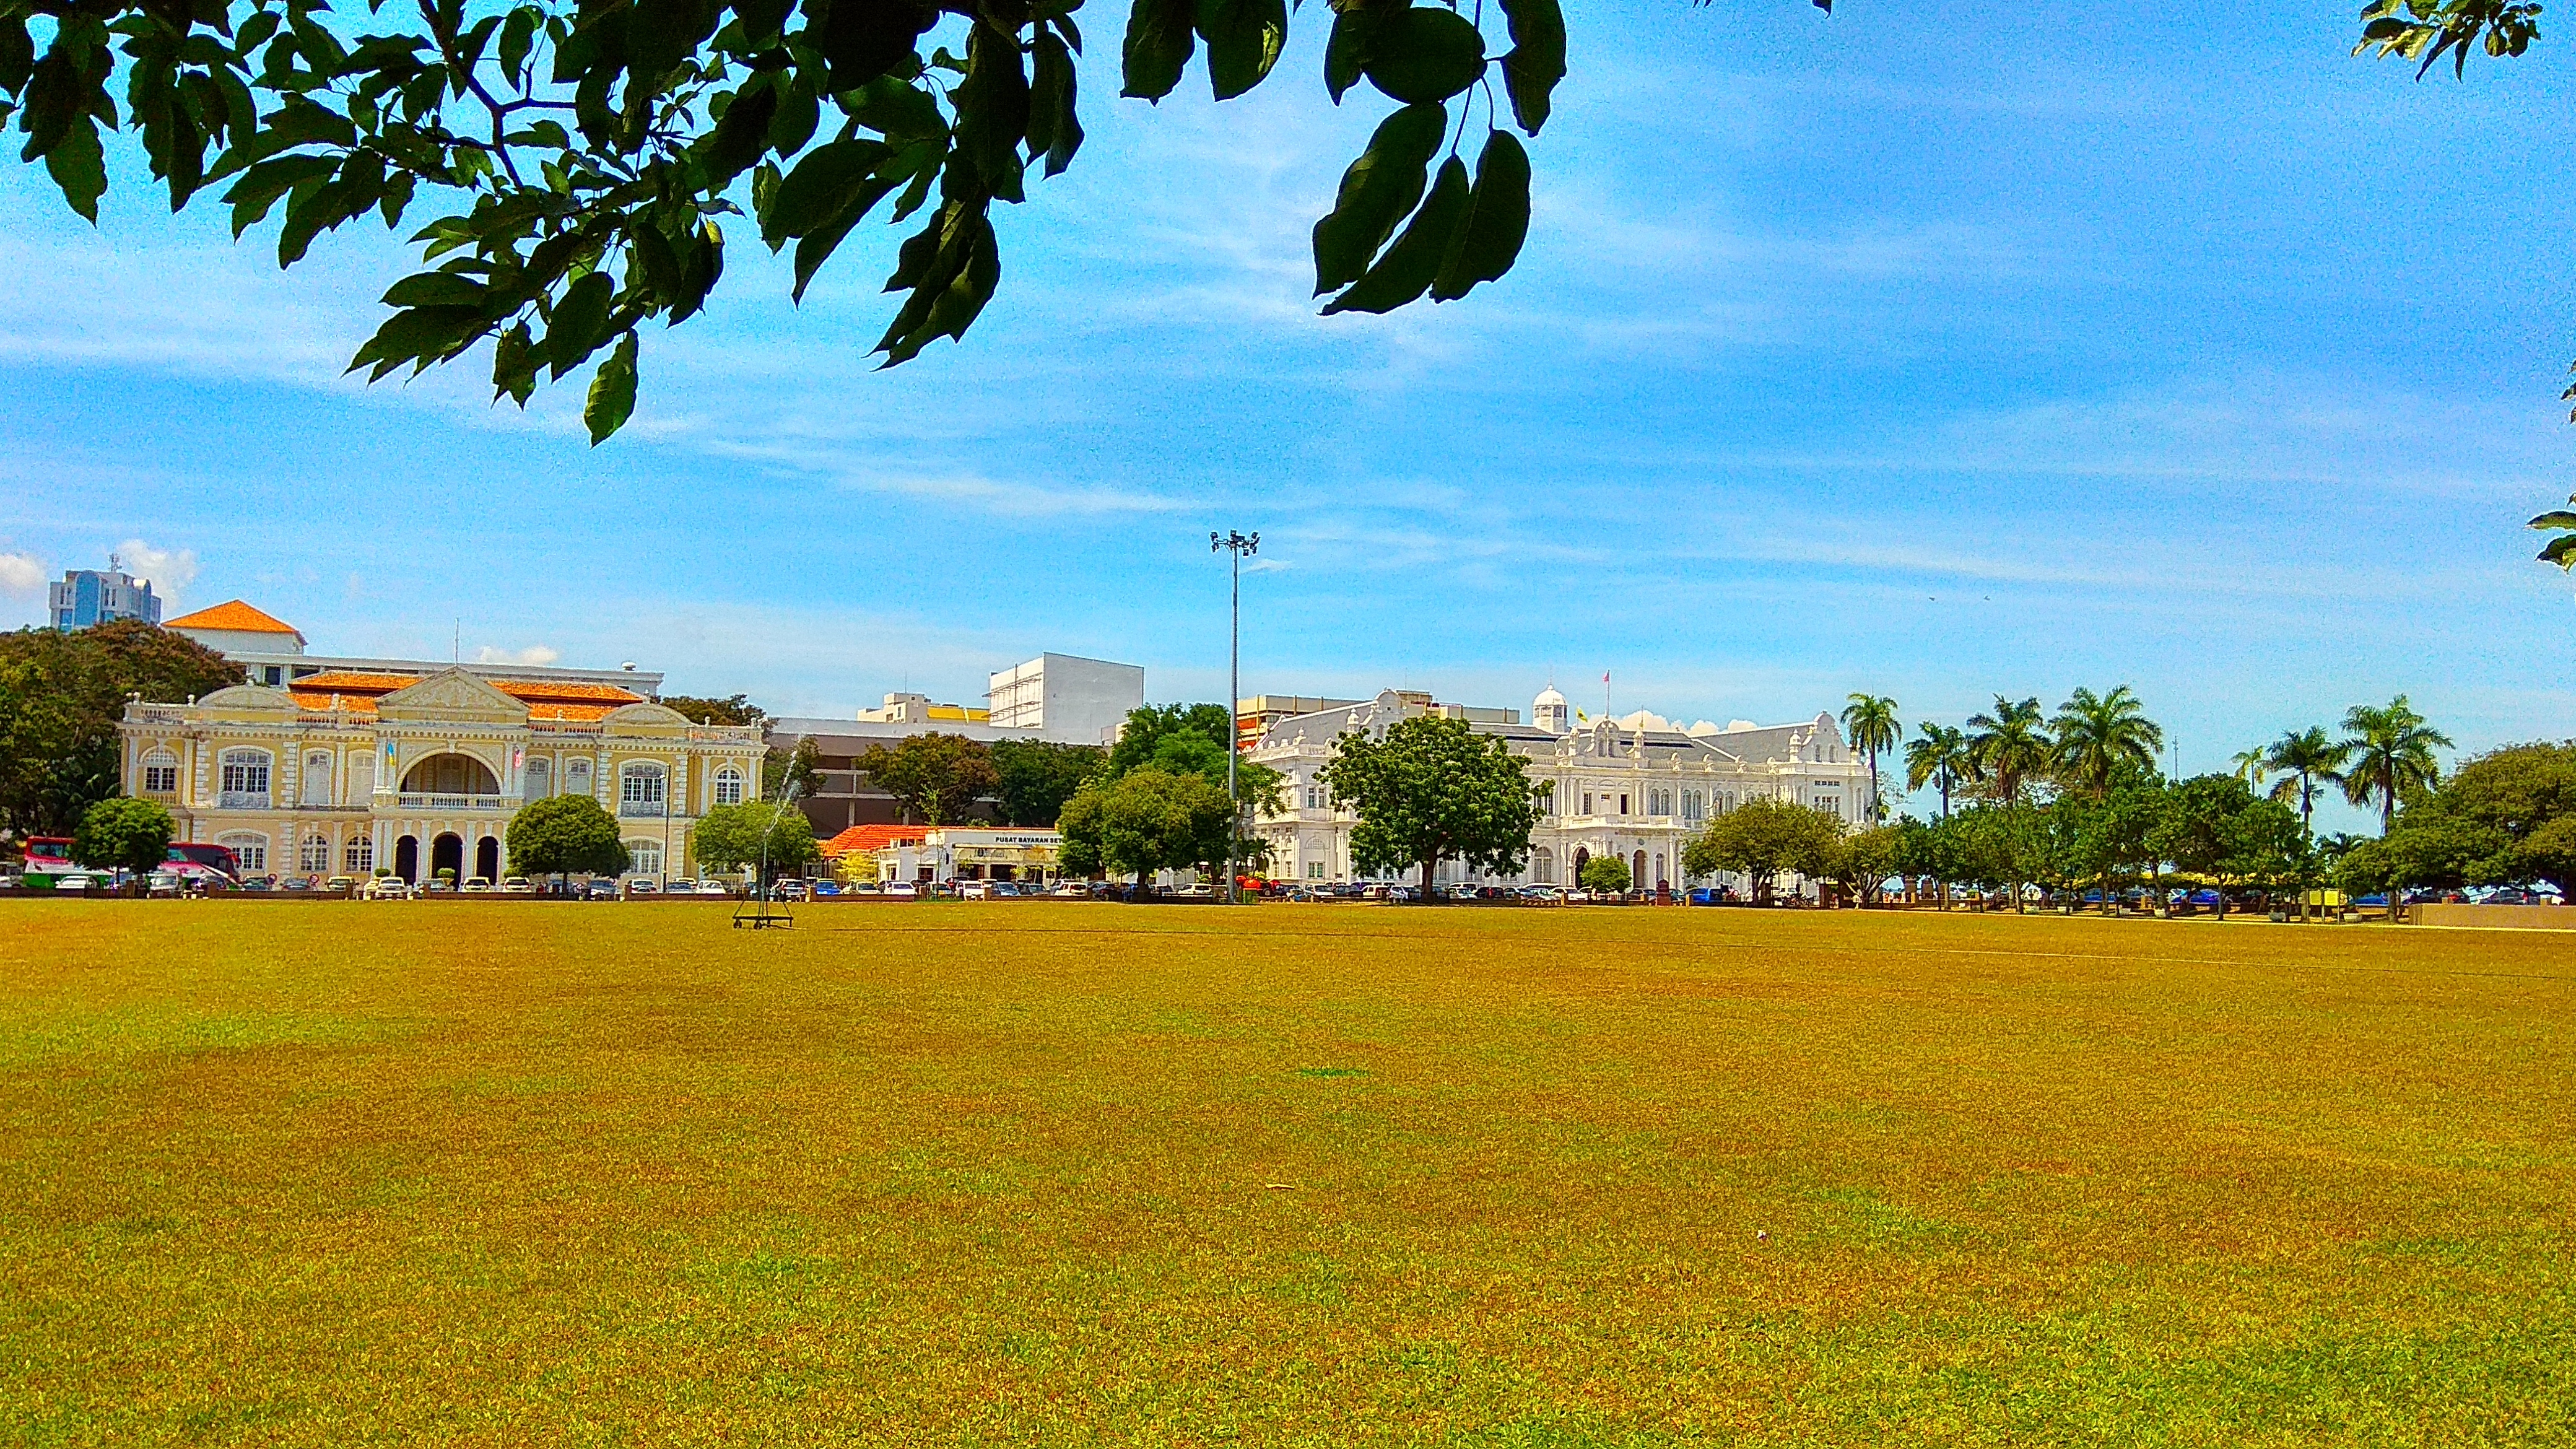 The Padang at the Esplanade in George Town, Penang with Town Hall (on the left) and City Hall (on the right) in the background. Photo taken on January 29, 2016.